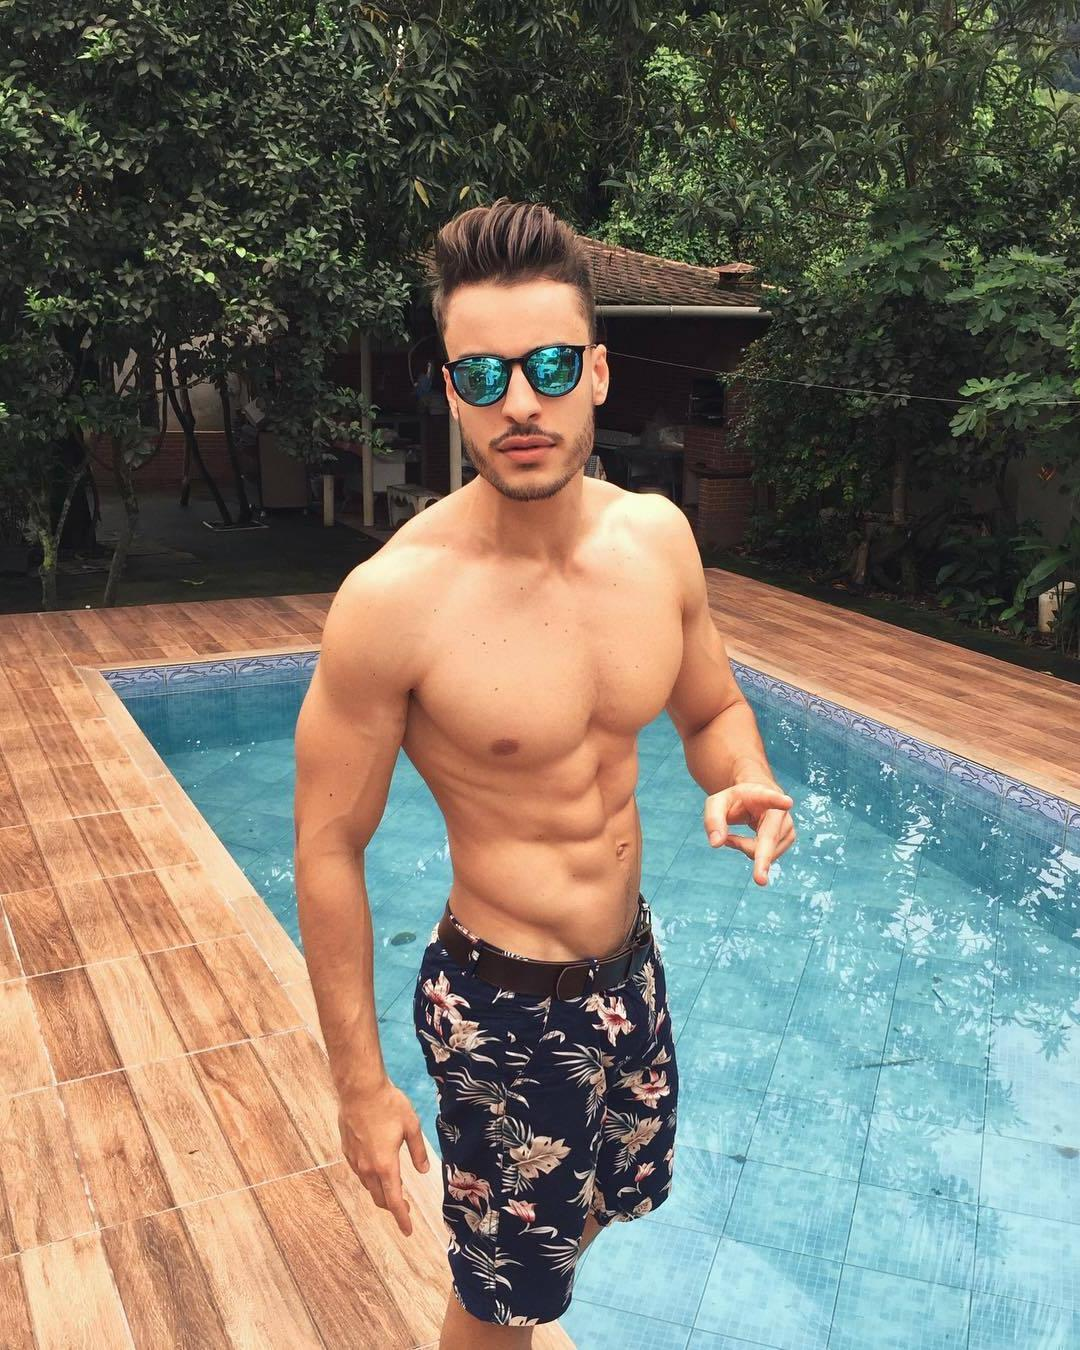 sexy-turkish-guys-shirtless-fit-muscular-body-abs-pecs-sunglasses-pool